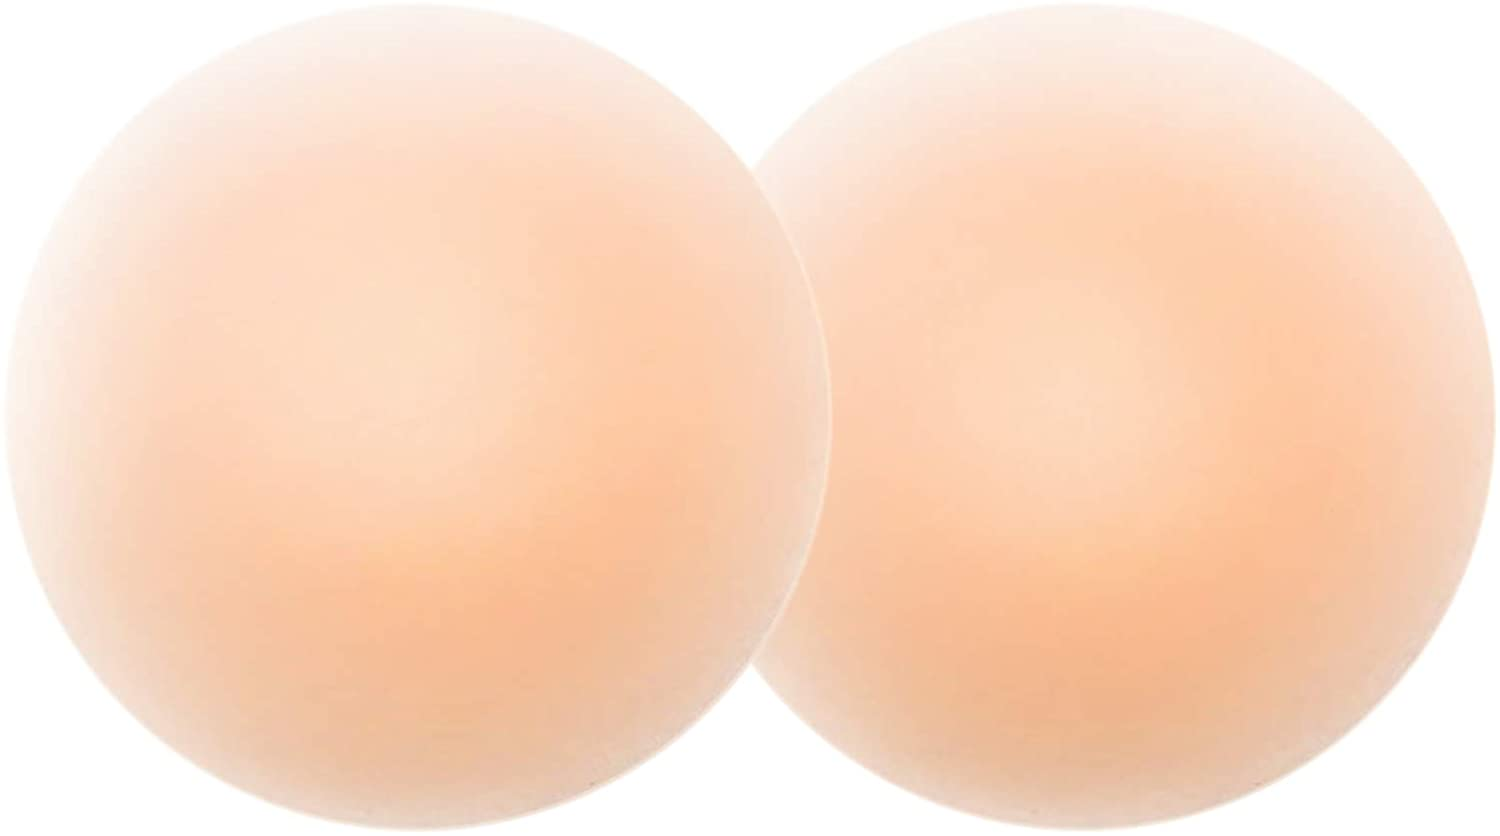 Nippleless Covers,Nipple covers for women Invisible Silicone Breast Pasties